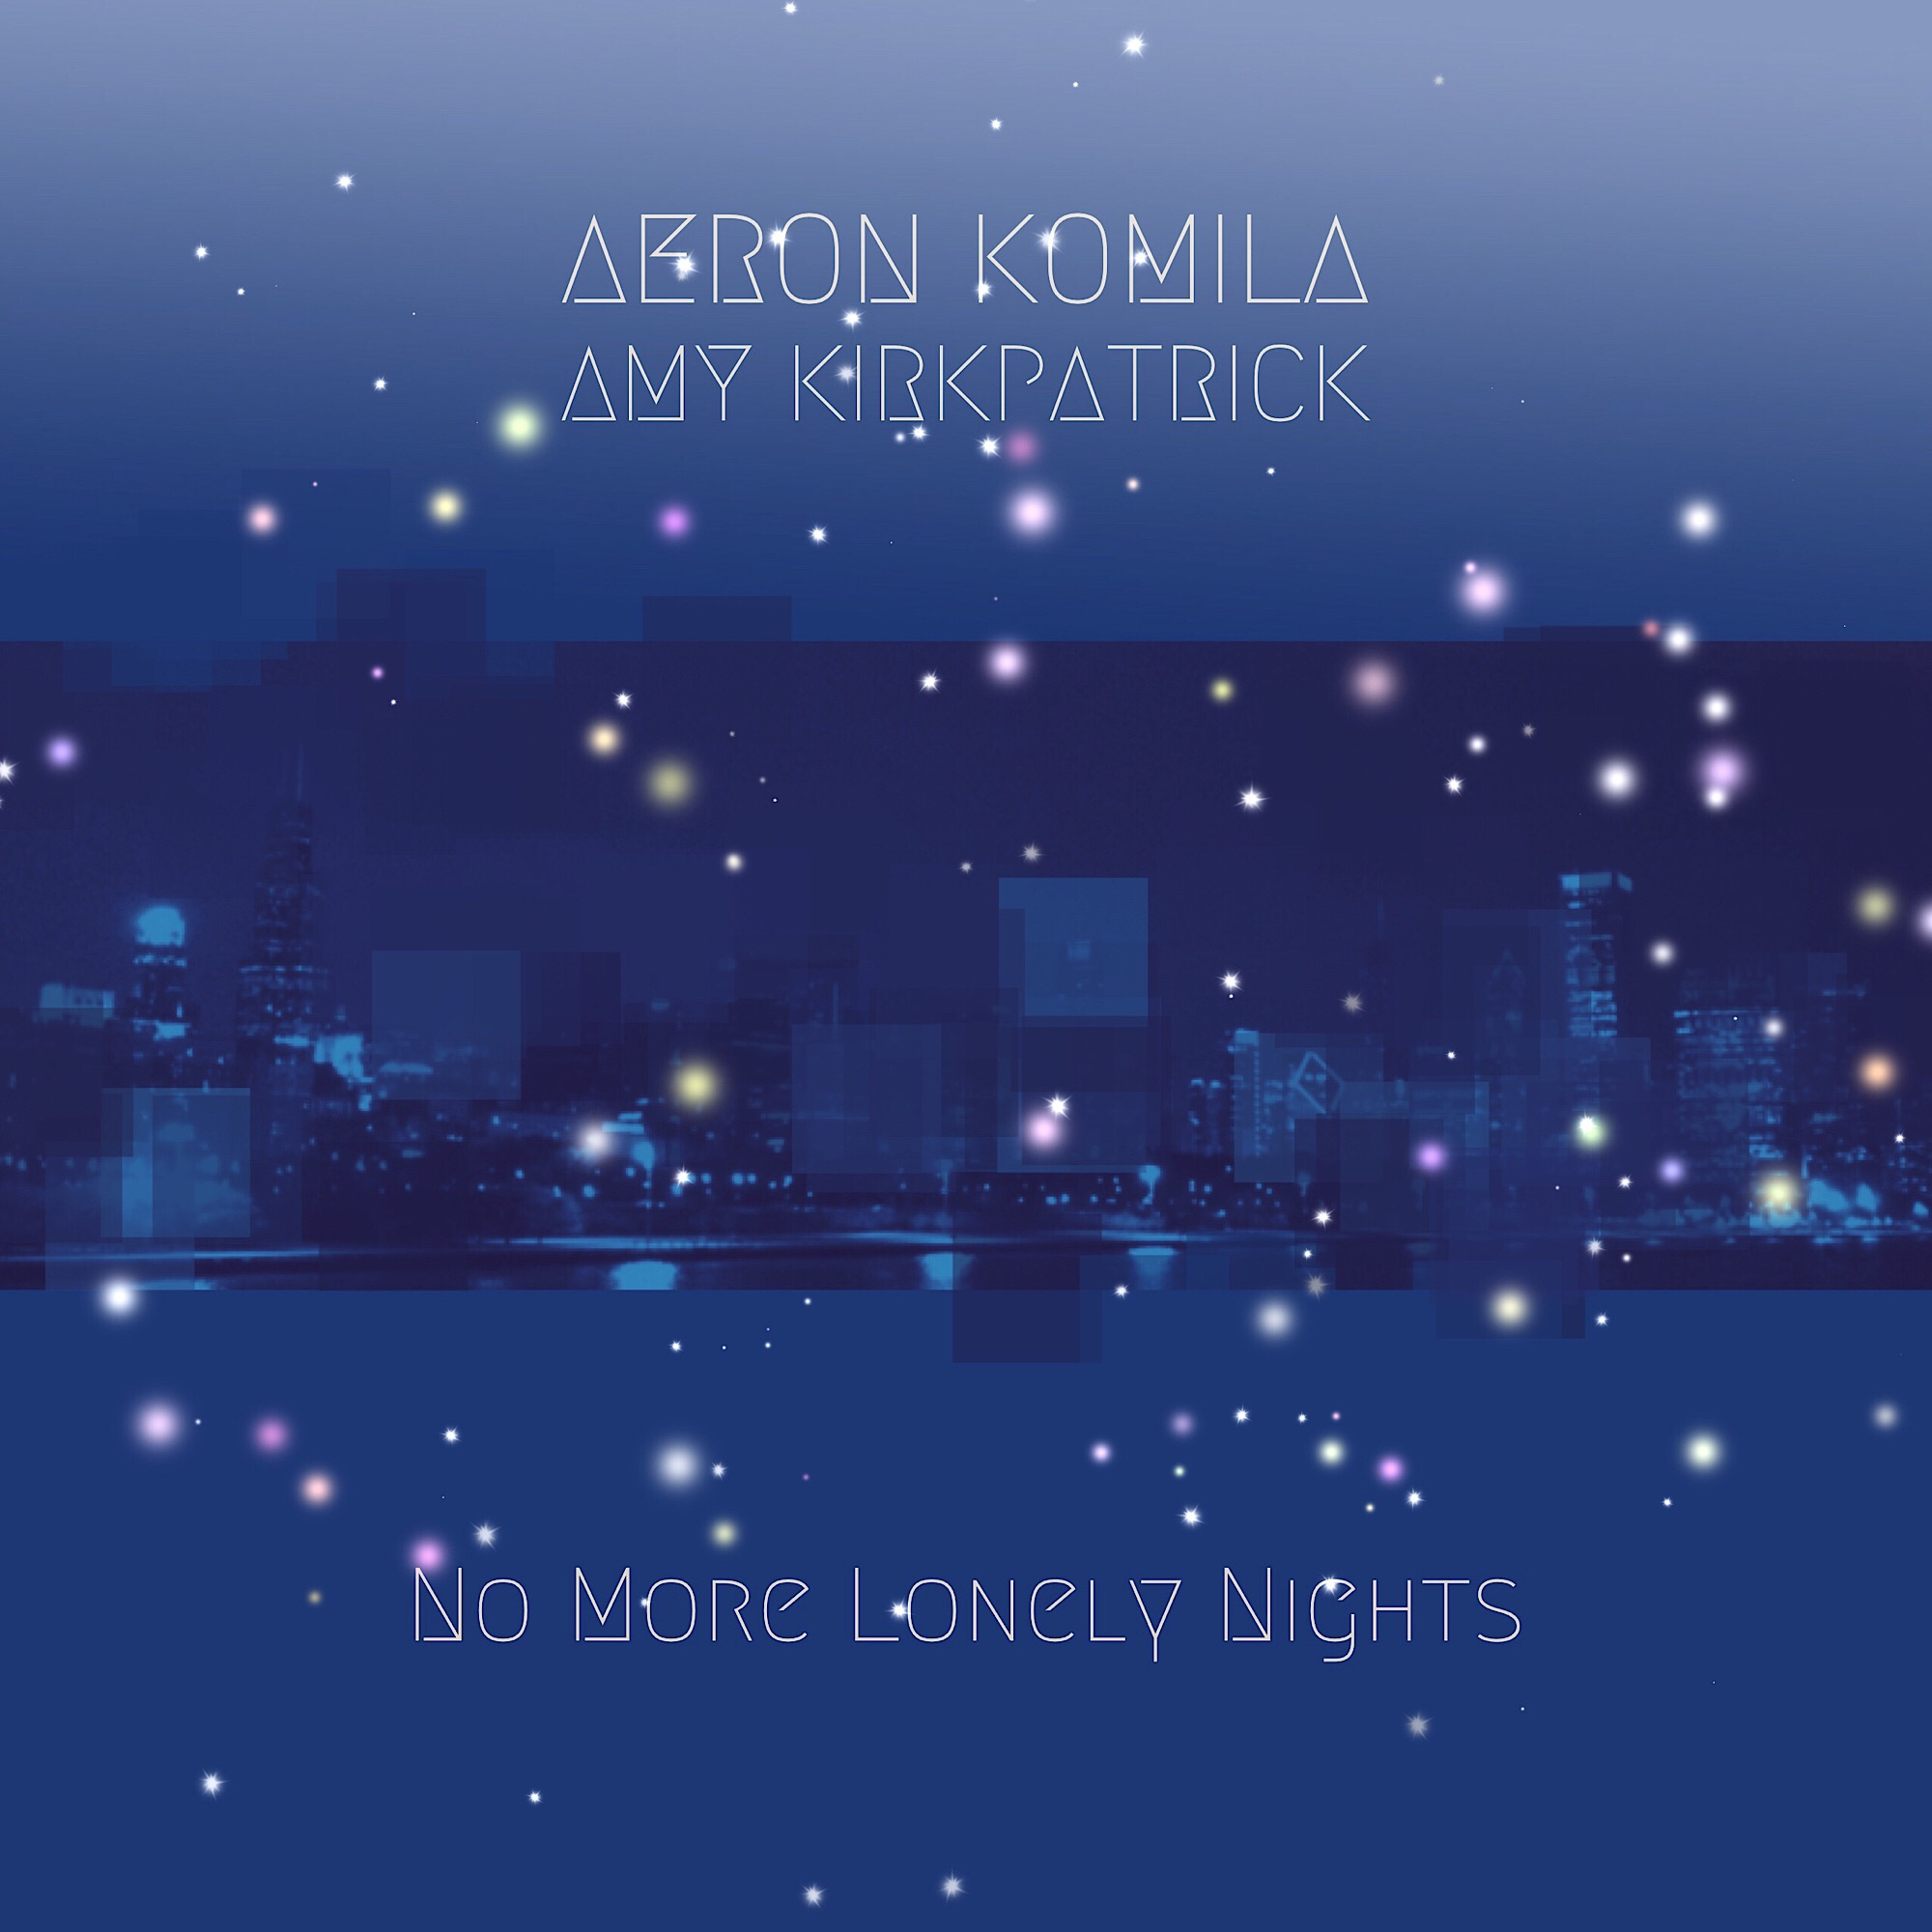 Aeron Komila - No More Lonely Nights (Alternate Extended Mix)